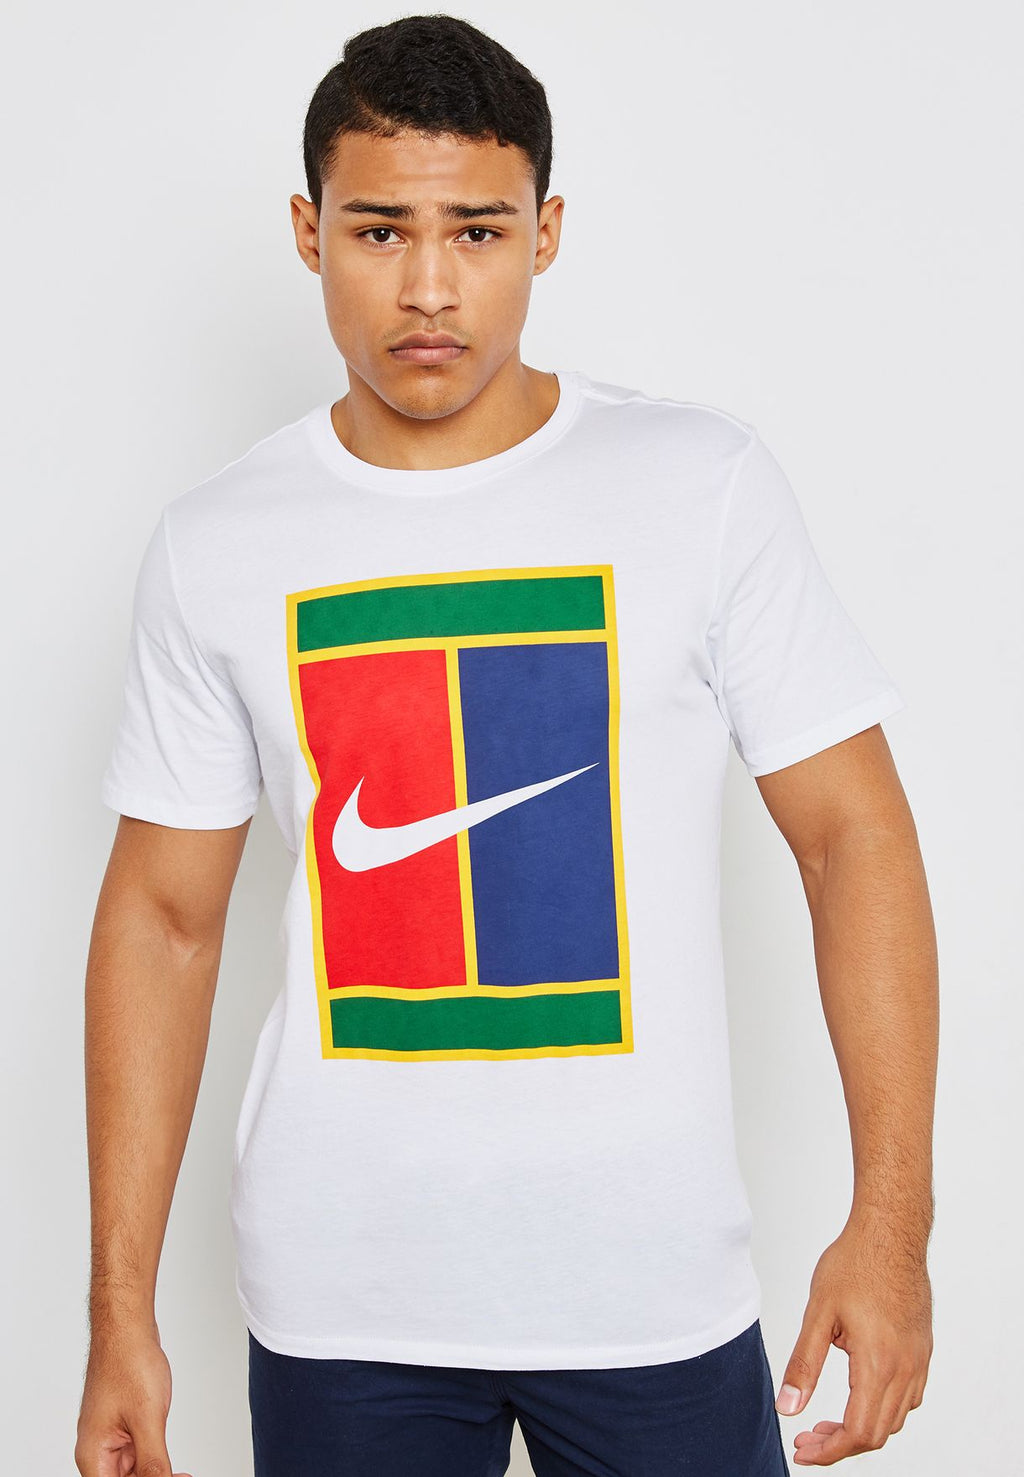 Men's Nike Heritage Logo Tennis Shirt.    943182-100